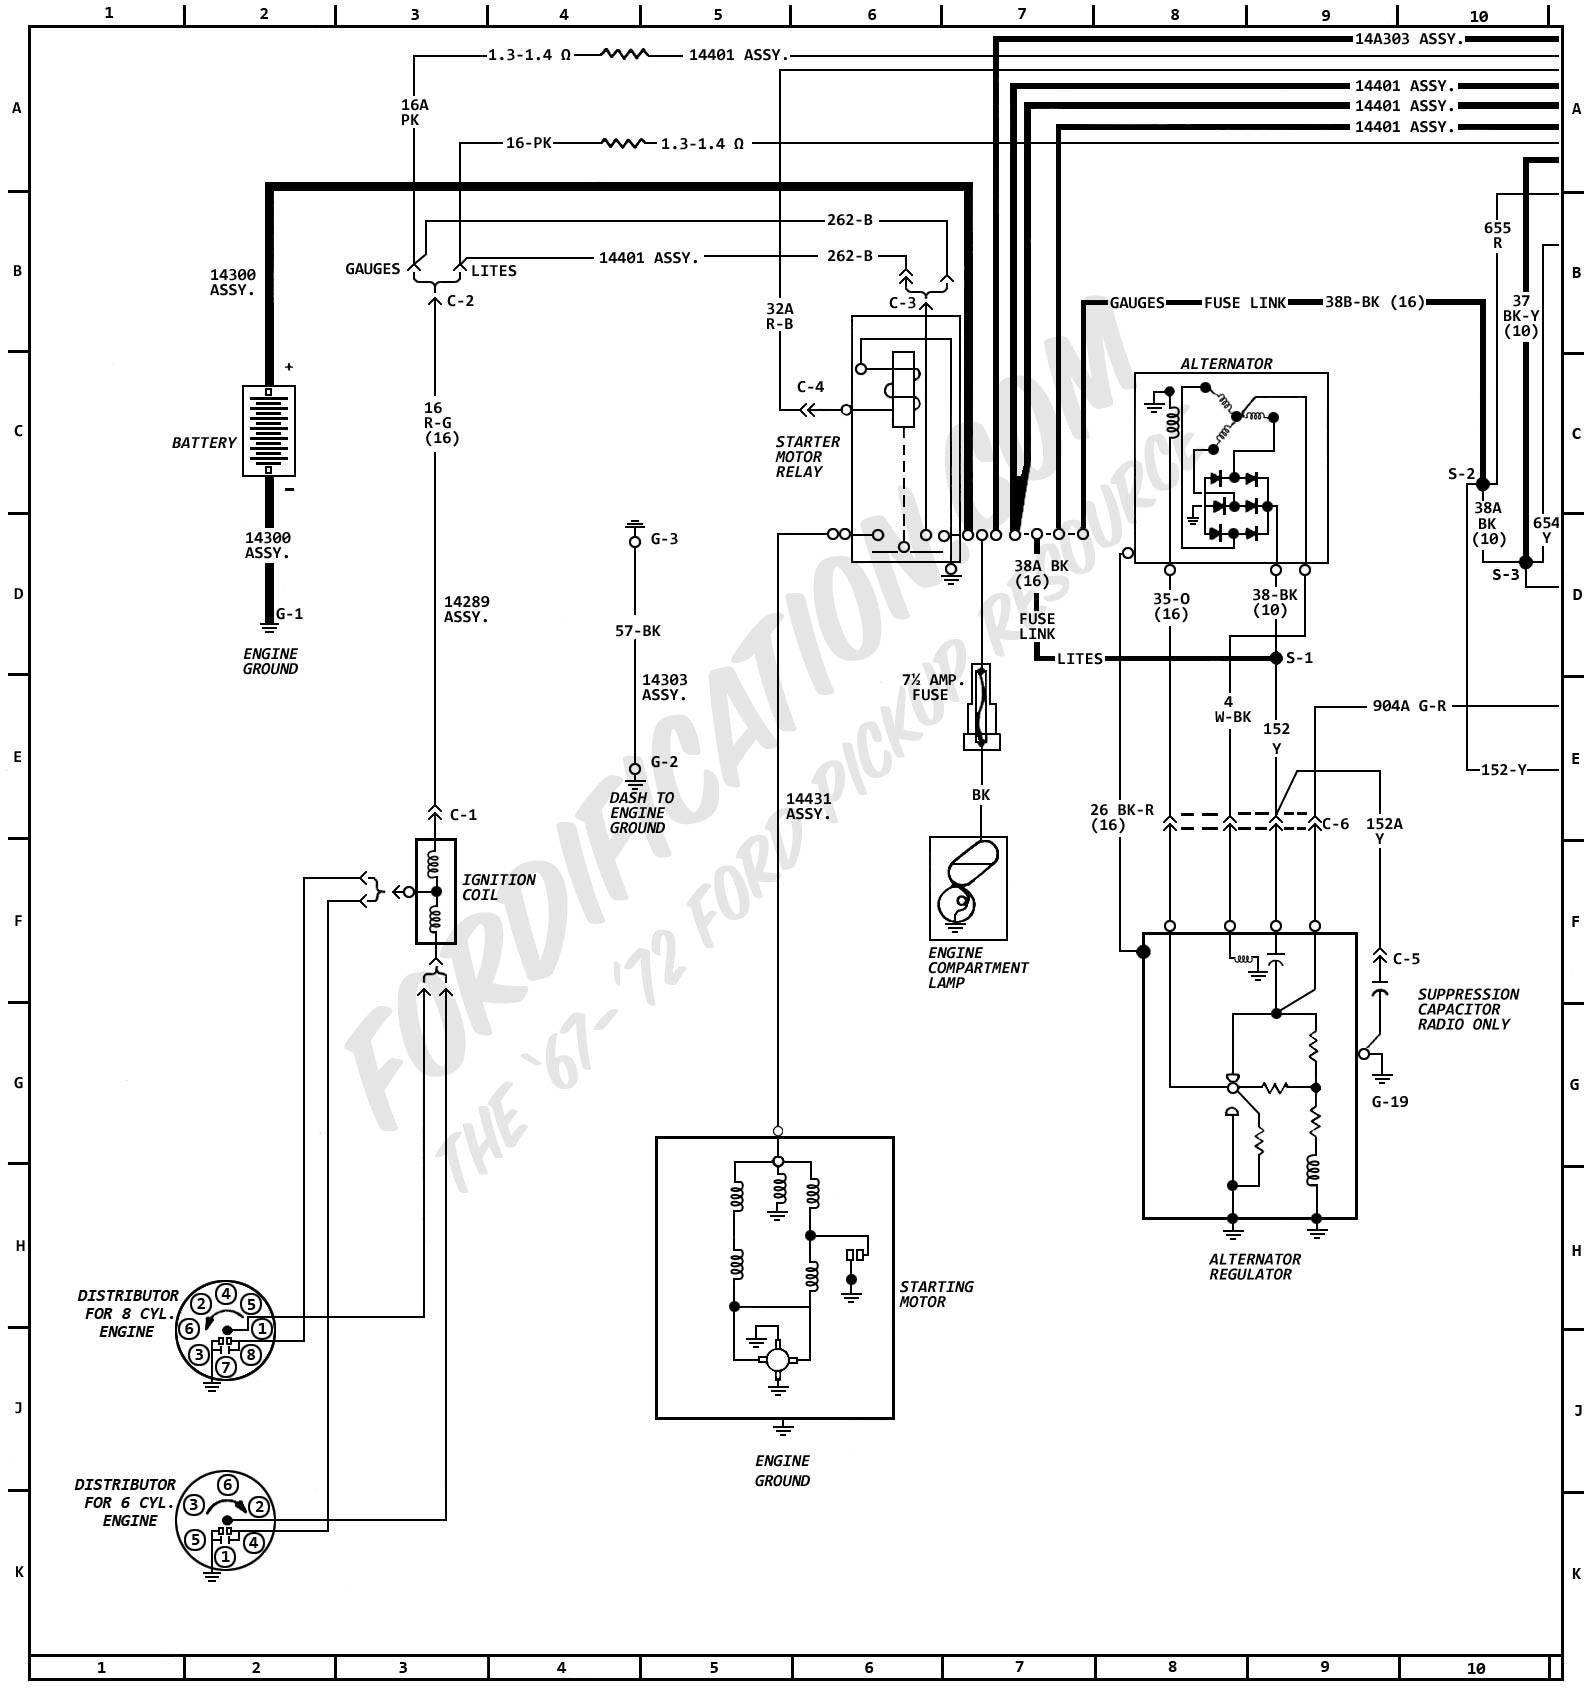 1971 Ford F100 Wiring Diagram http://www.fordification.com